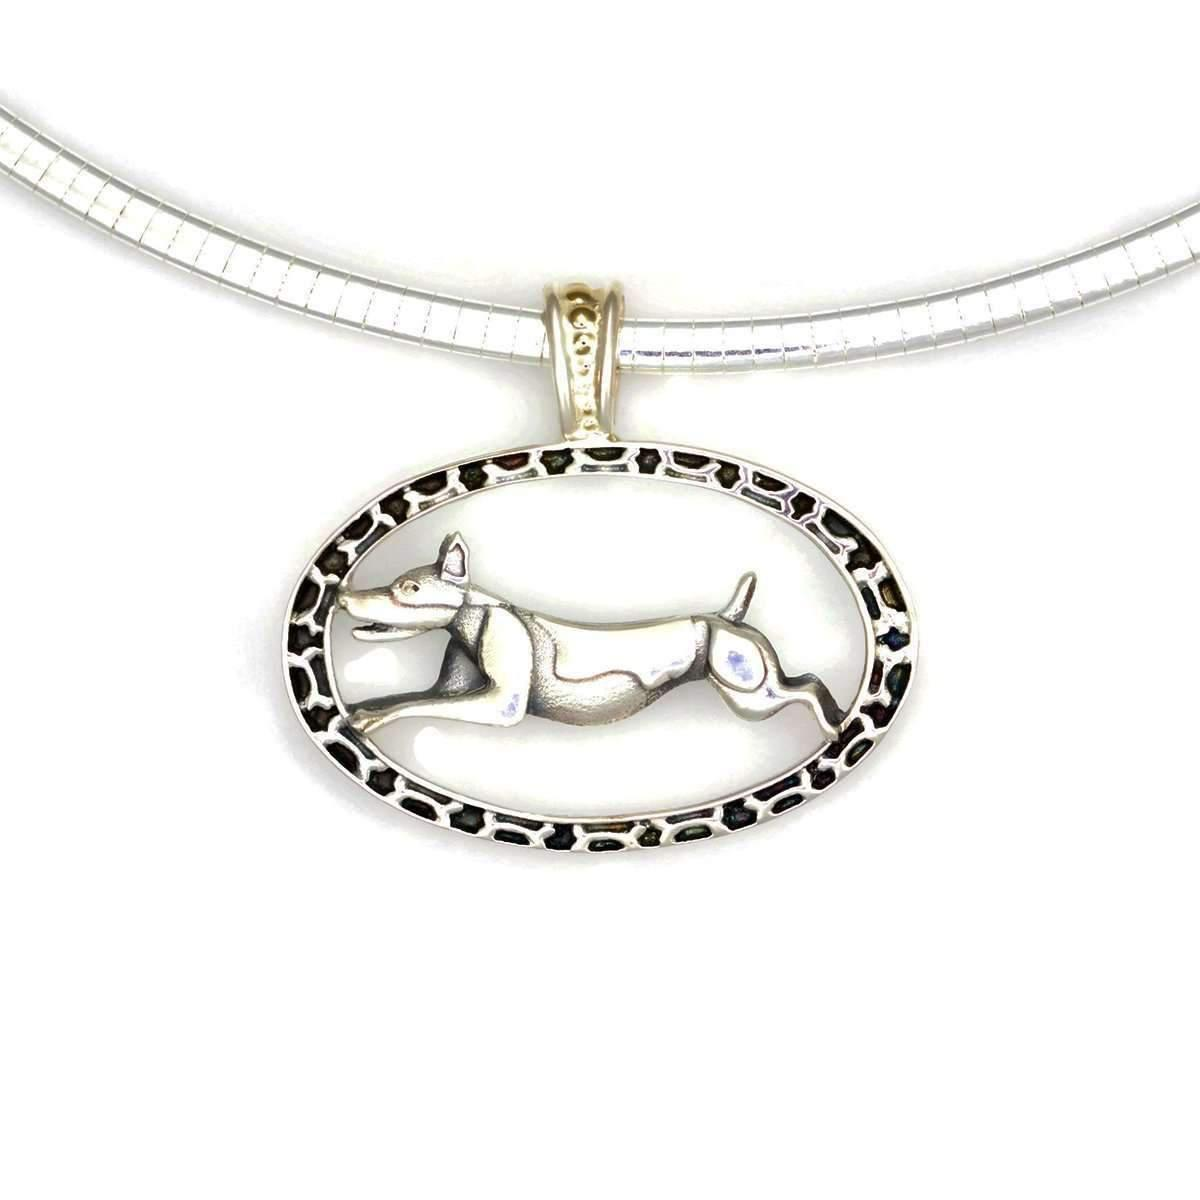 Donna Pizarro Designs Sterling Great Pyrenees Necklace With 14kt Accent pTrZIJf2